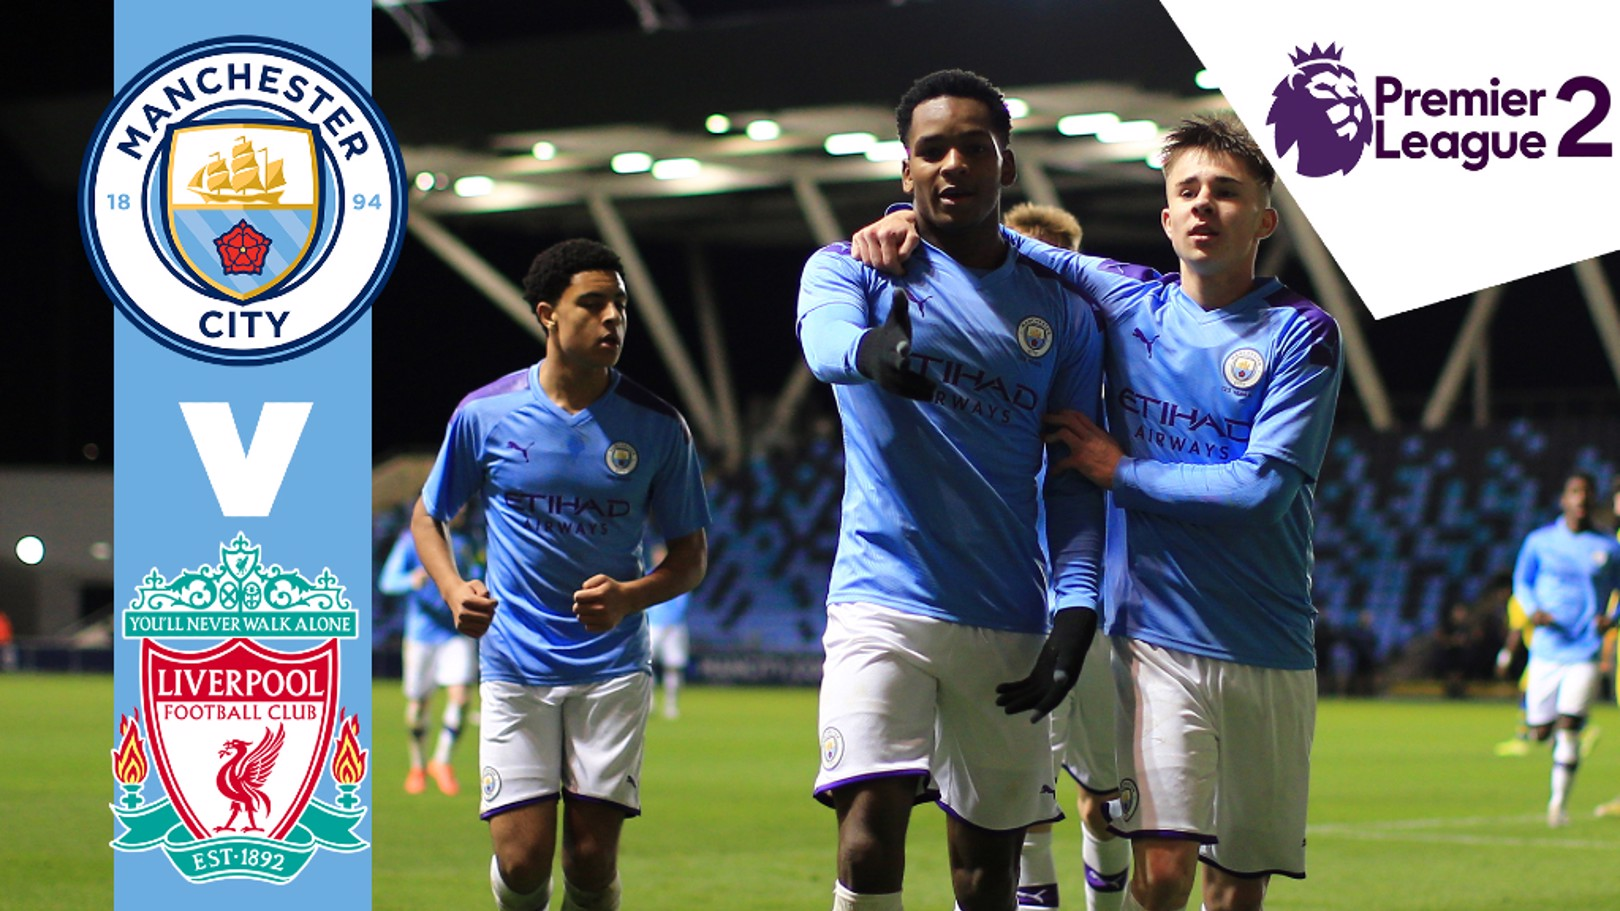 MATCHDAY: City EDS host Liverpool in the Premier League 2